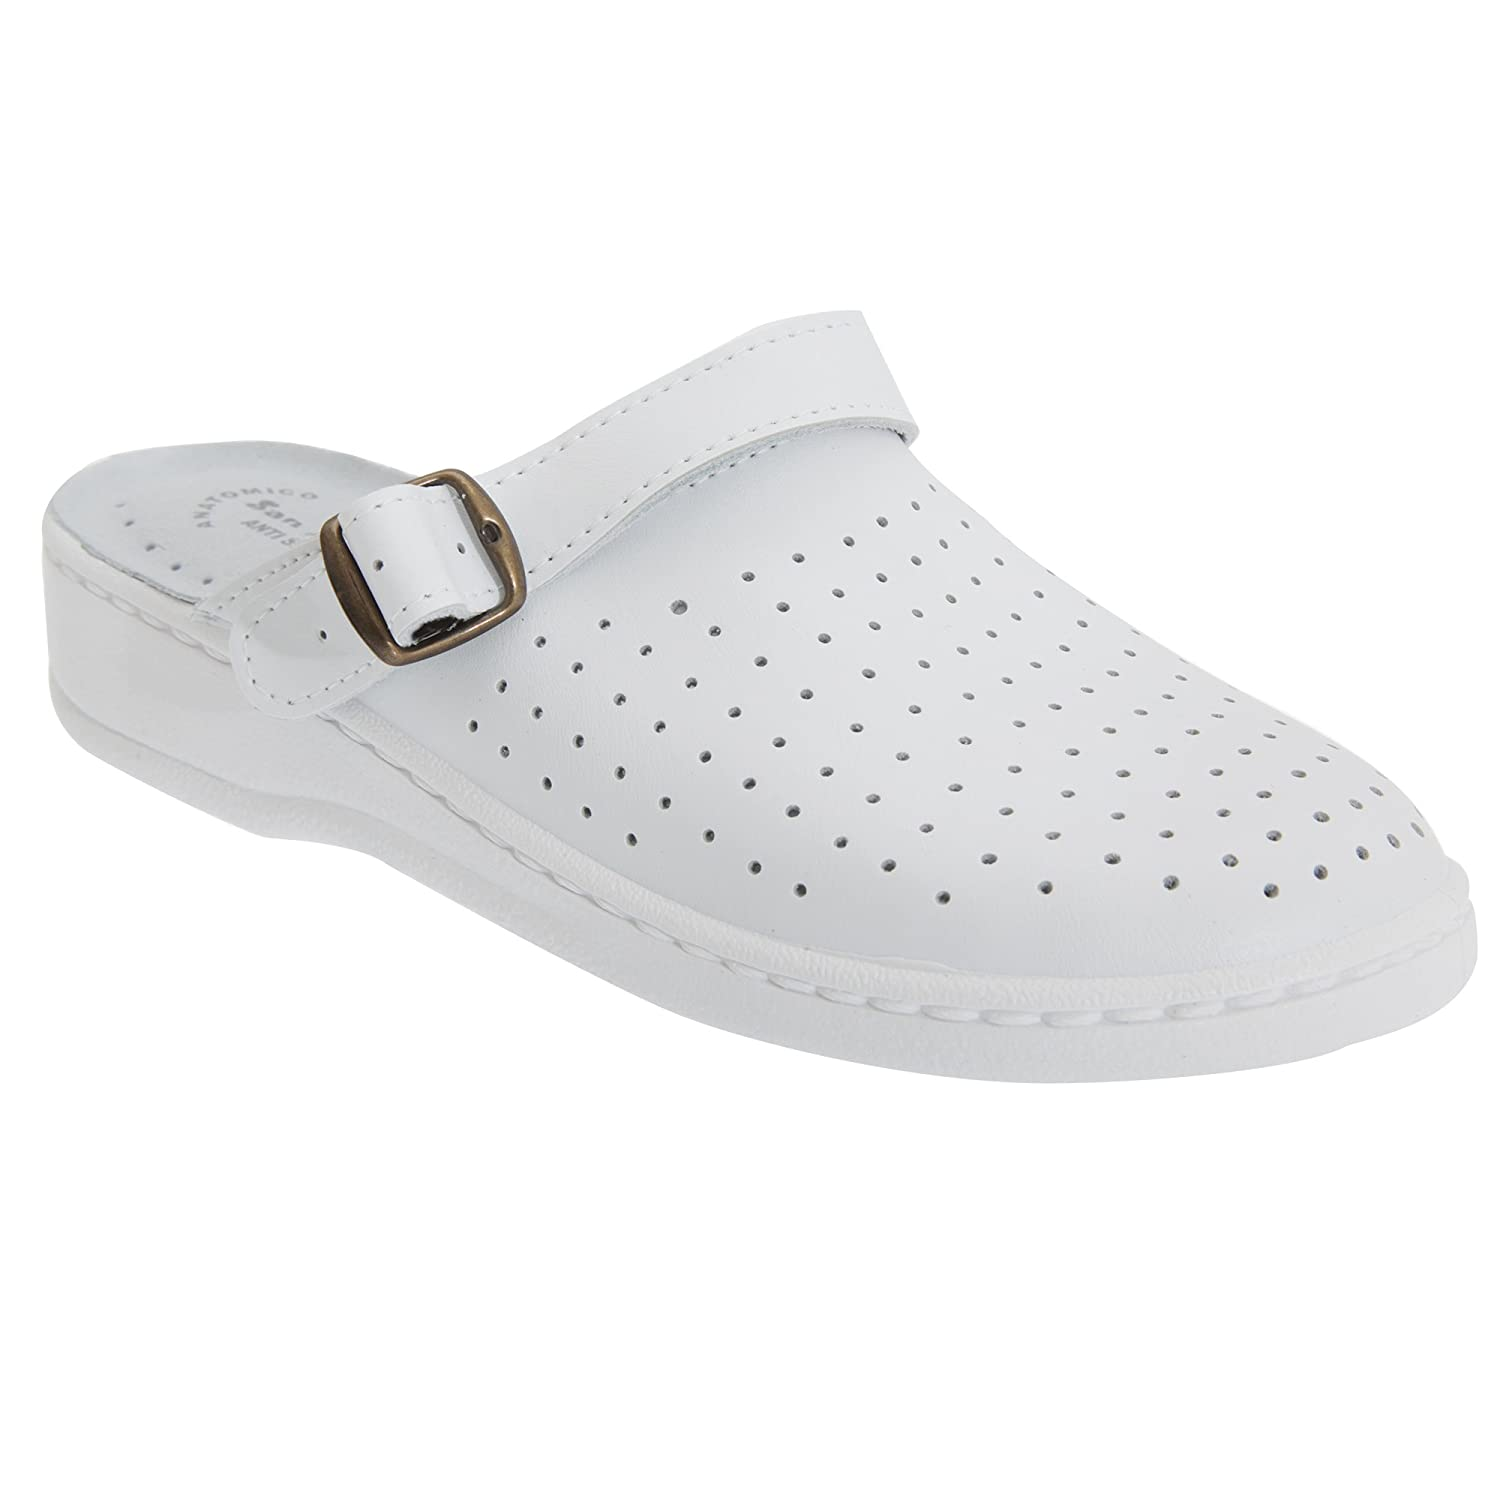 7 US, White DEK Unisex Swivel Bar Coated Leather Clogs UTDF734/_8